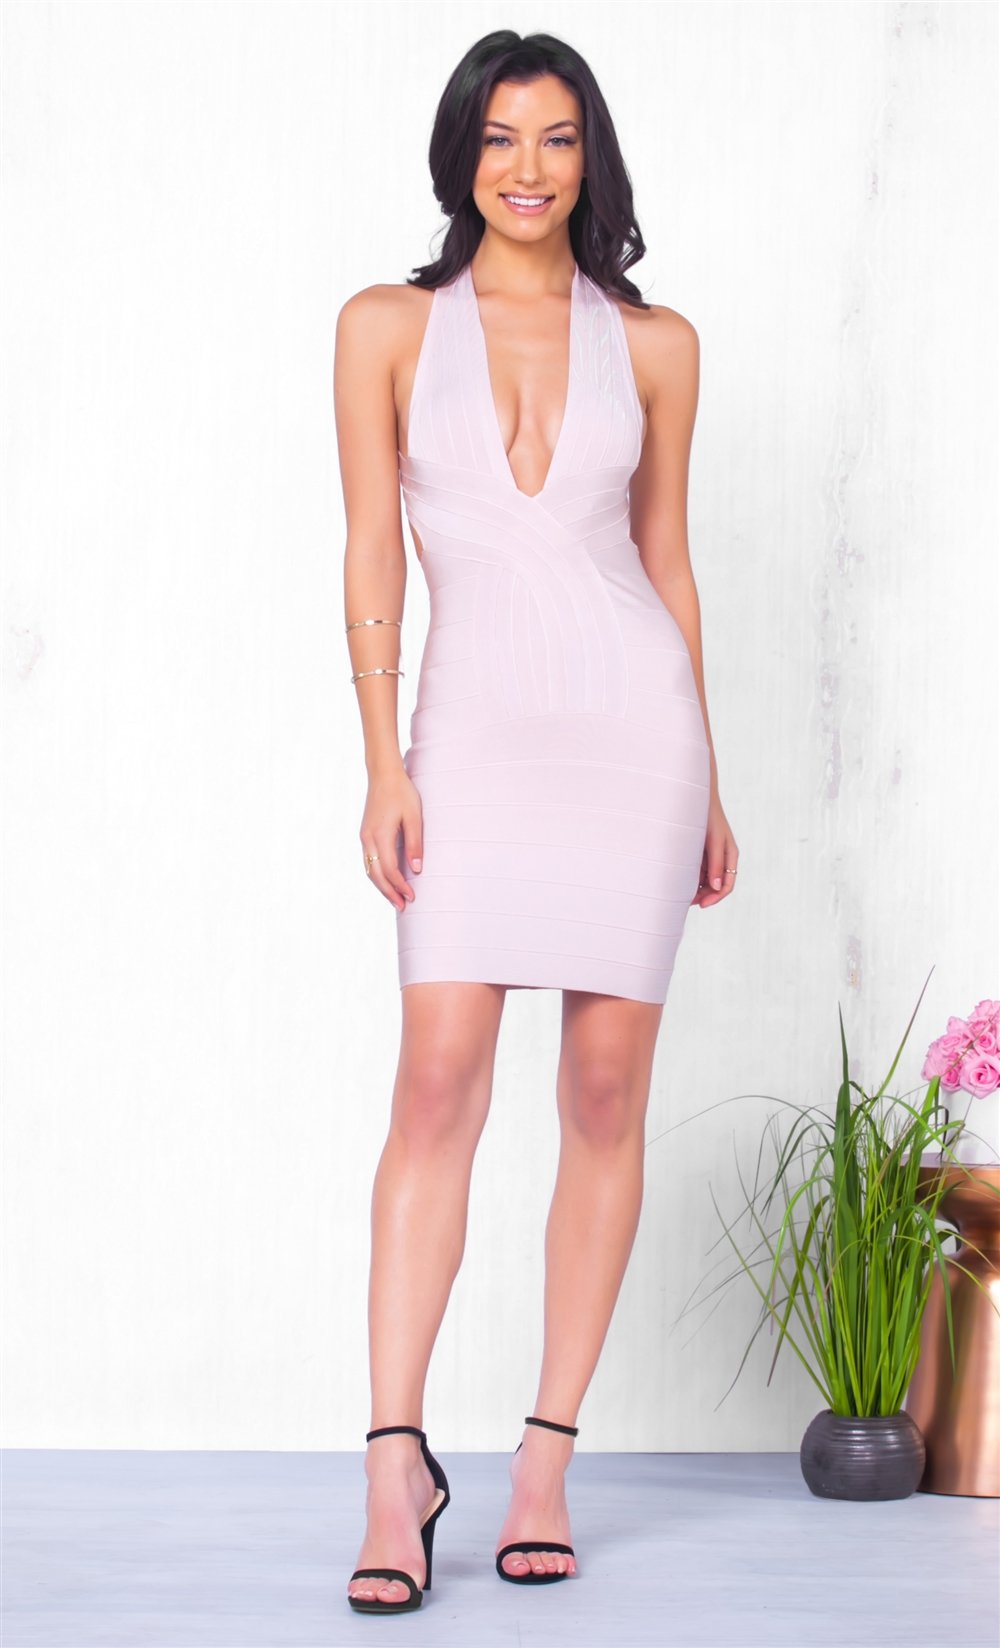 Indie XO Special Invitation Sleeveless Apricot Plunging Deep V Neck Cross Back Bodycon Bandage Fitted Mini Dress - Just Ours!